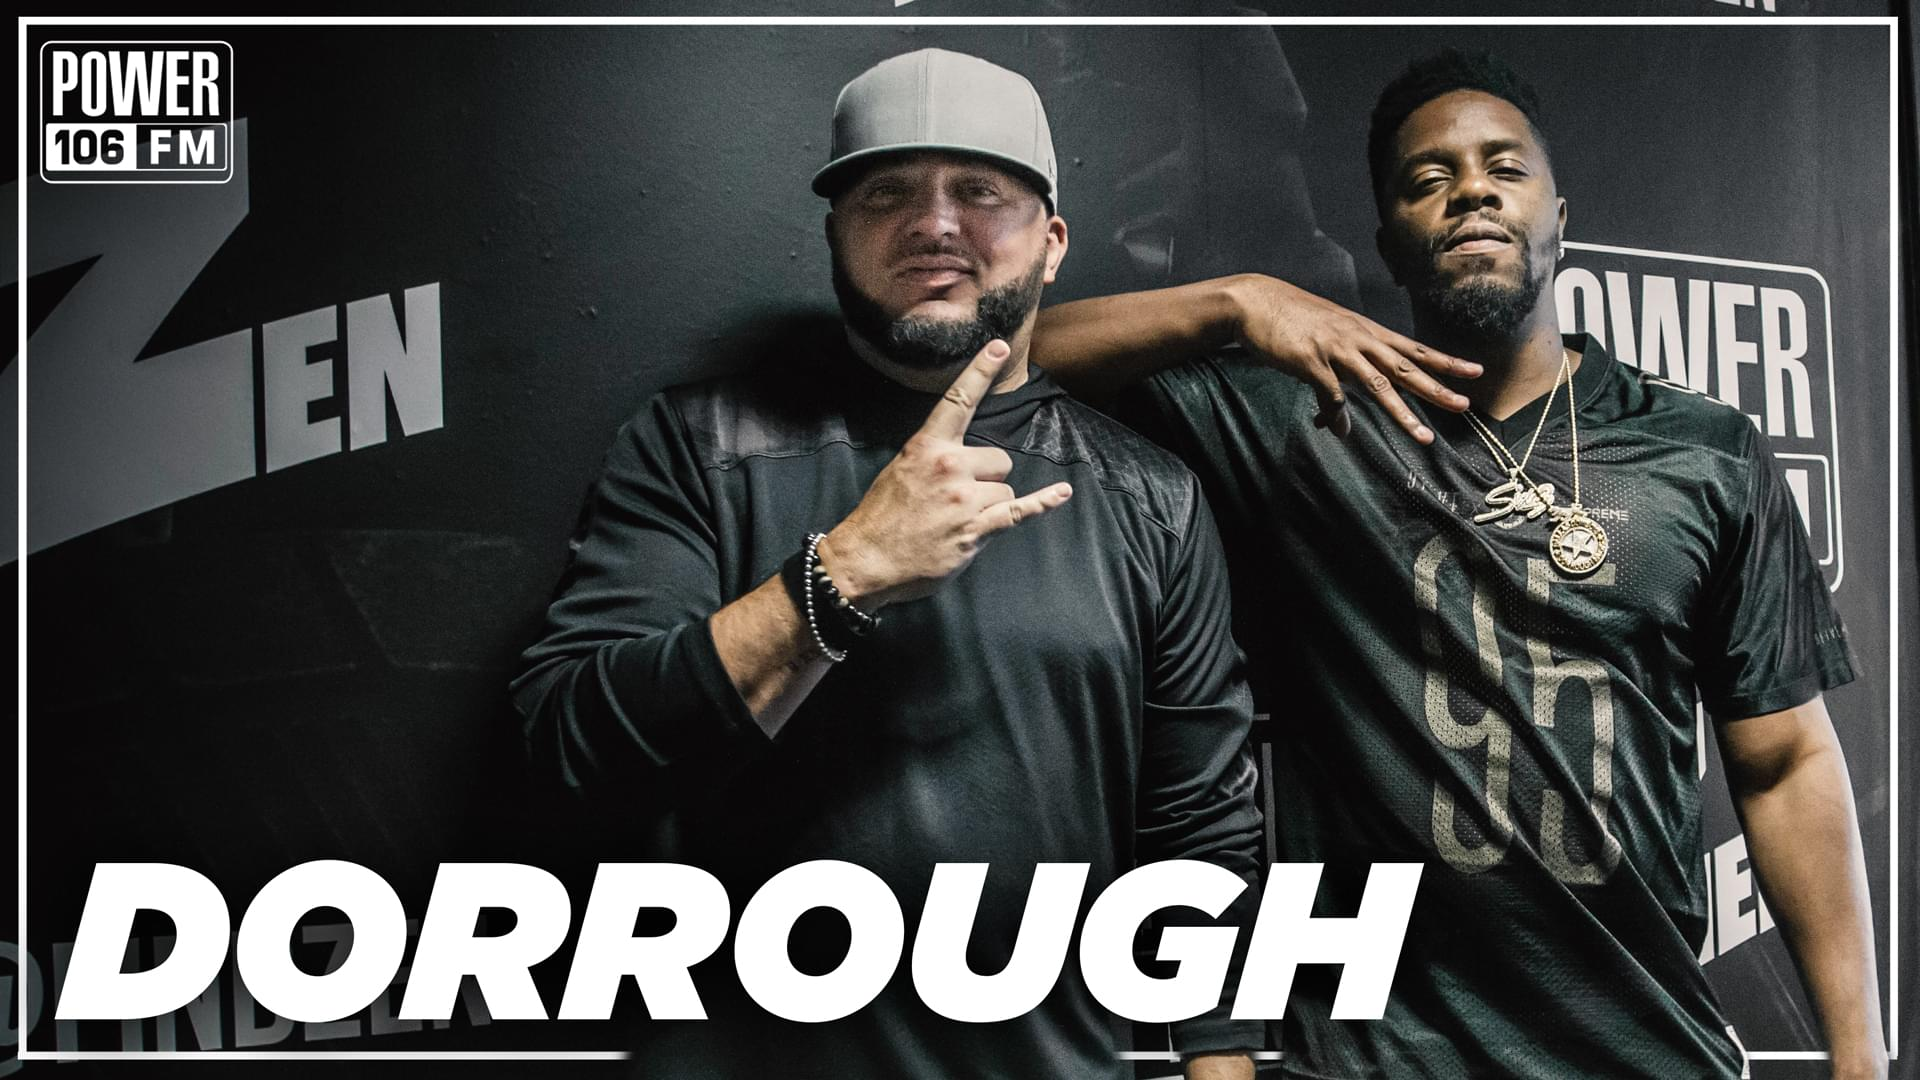 Dorrough On Close Friendship w/ Nipsey Hussle & Keeping The Marathon Continues Legacy [WATCH]